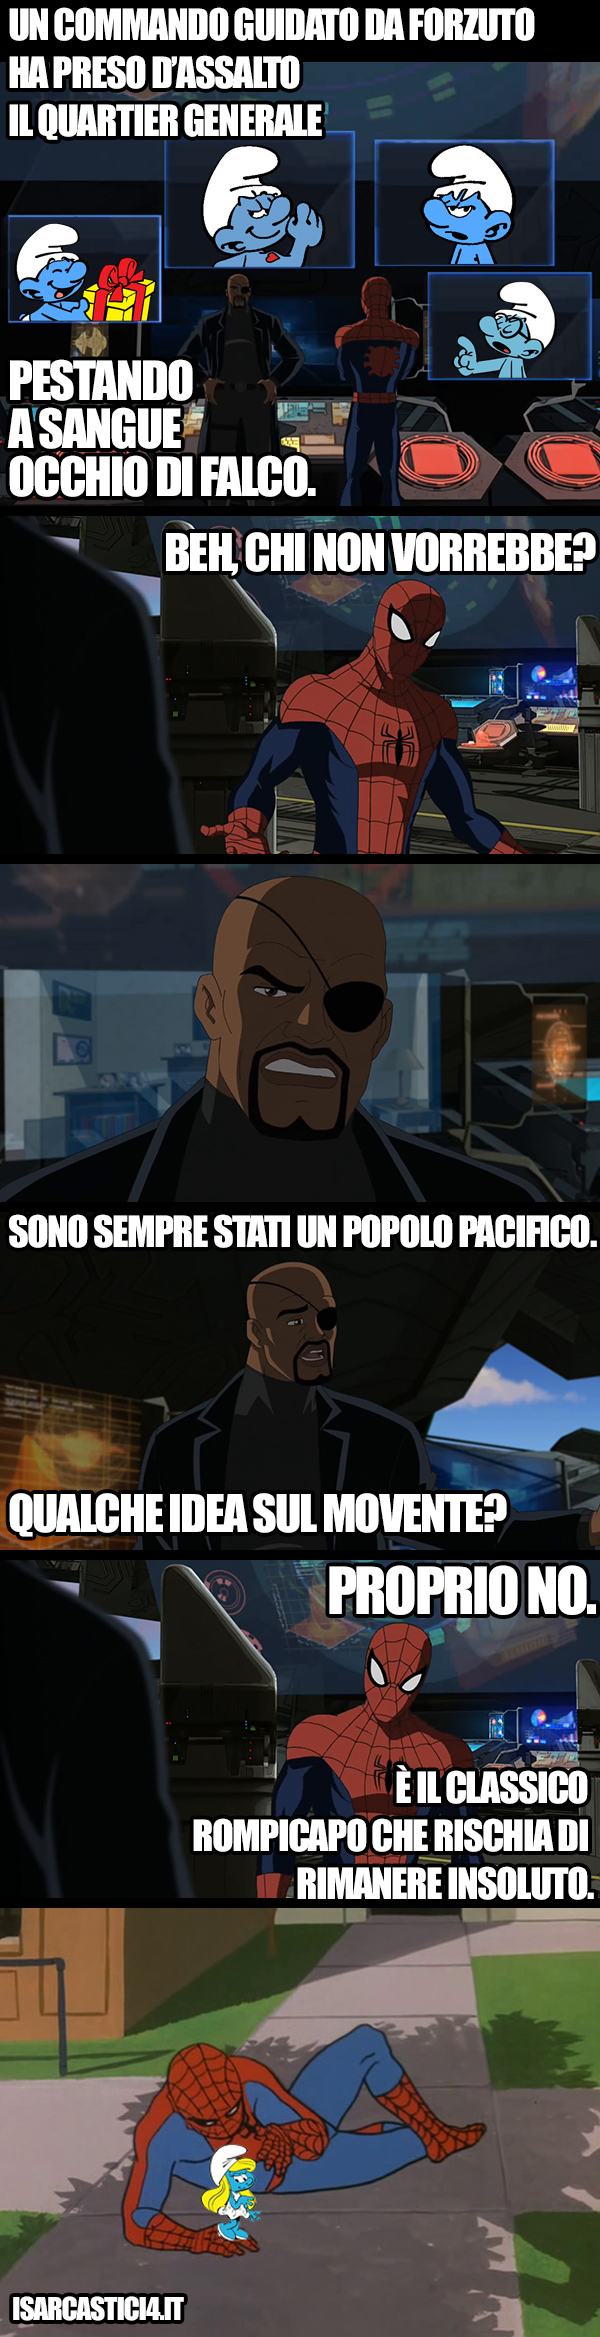 Ultimate Spider-Man animated series meme ita -  Rompicapo